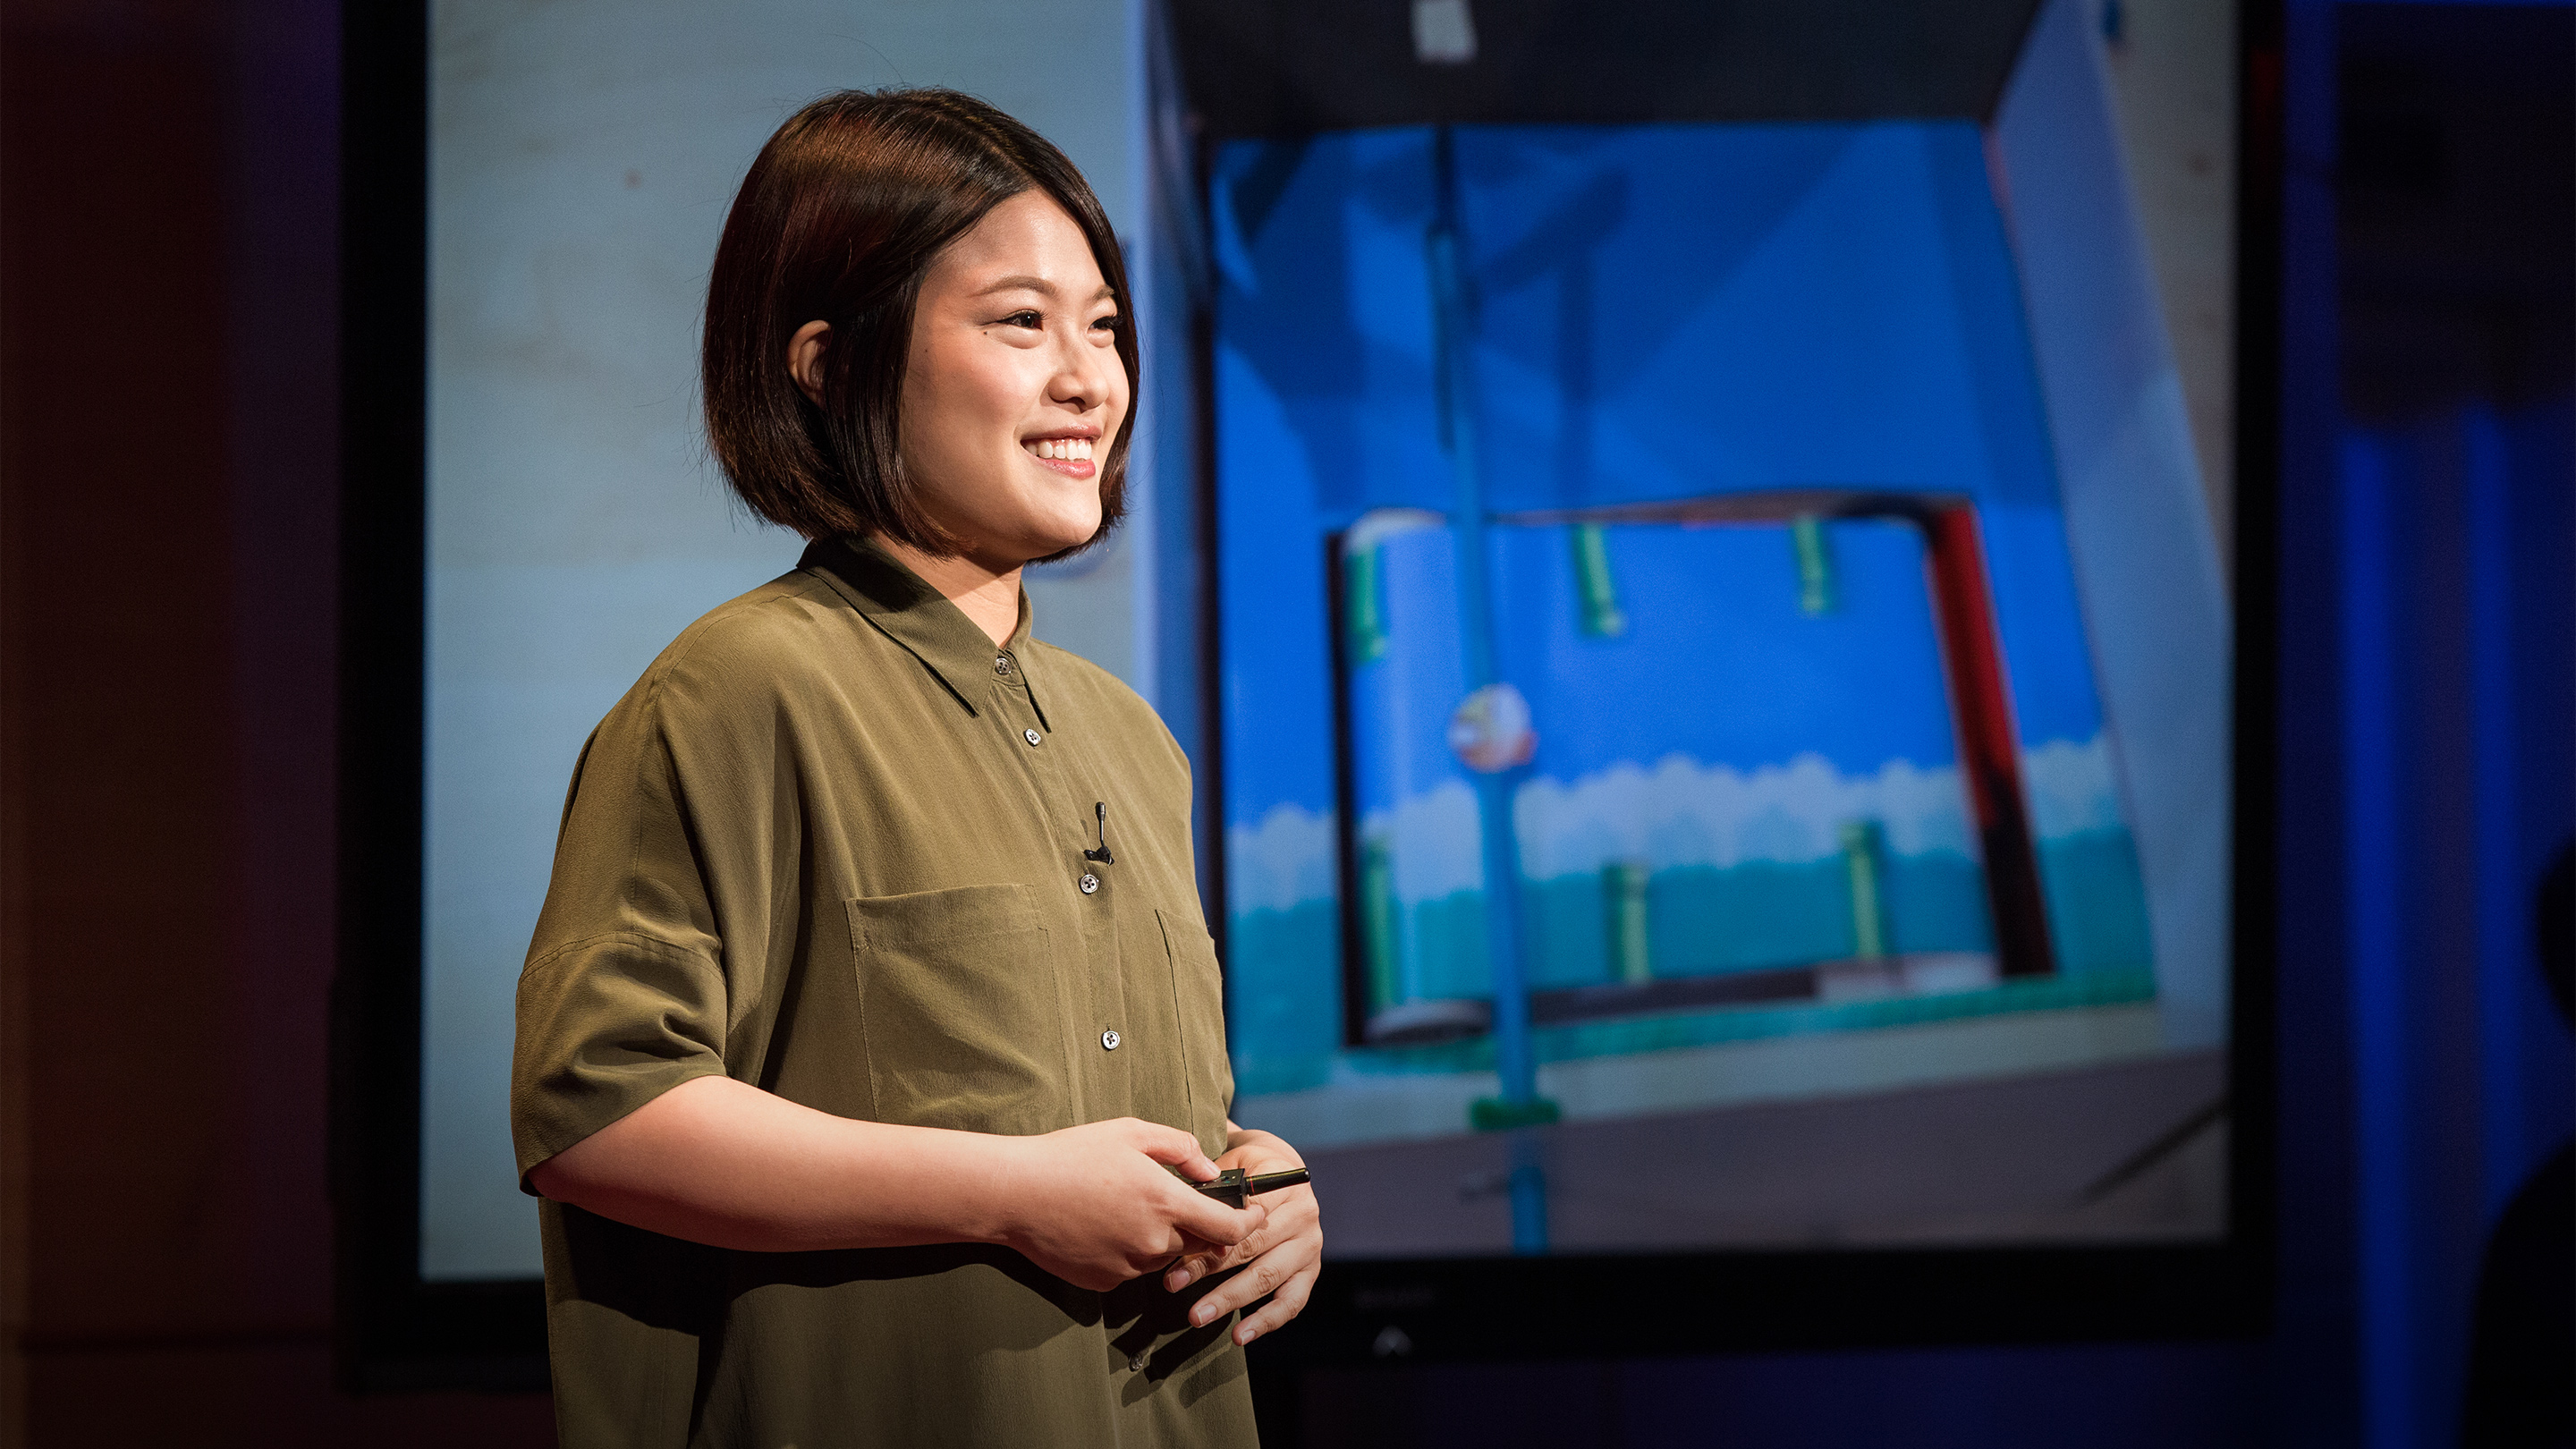 Fawn Qiu: Easy DIY projects for kid engineers thumbnail